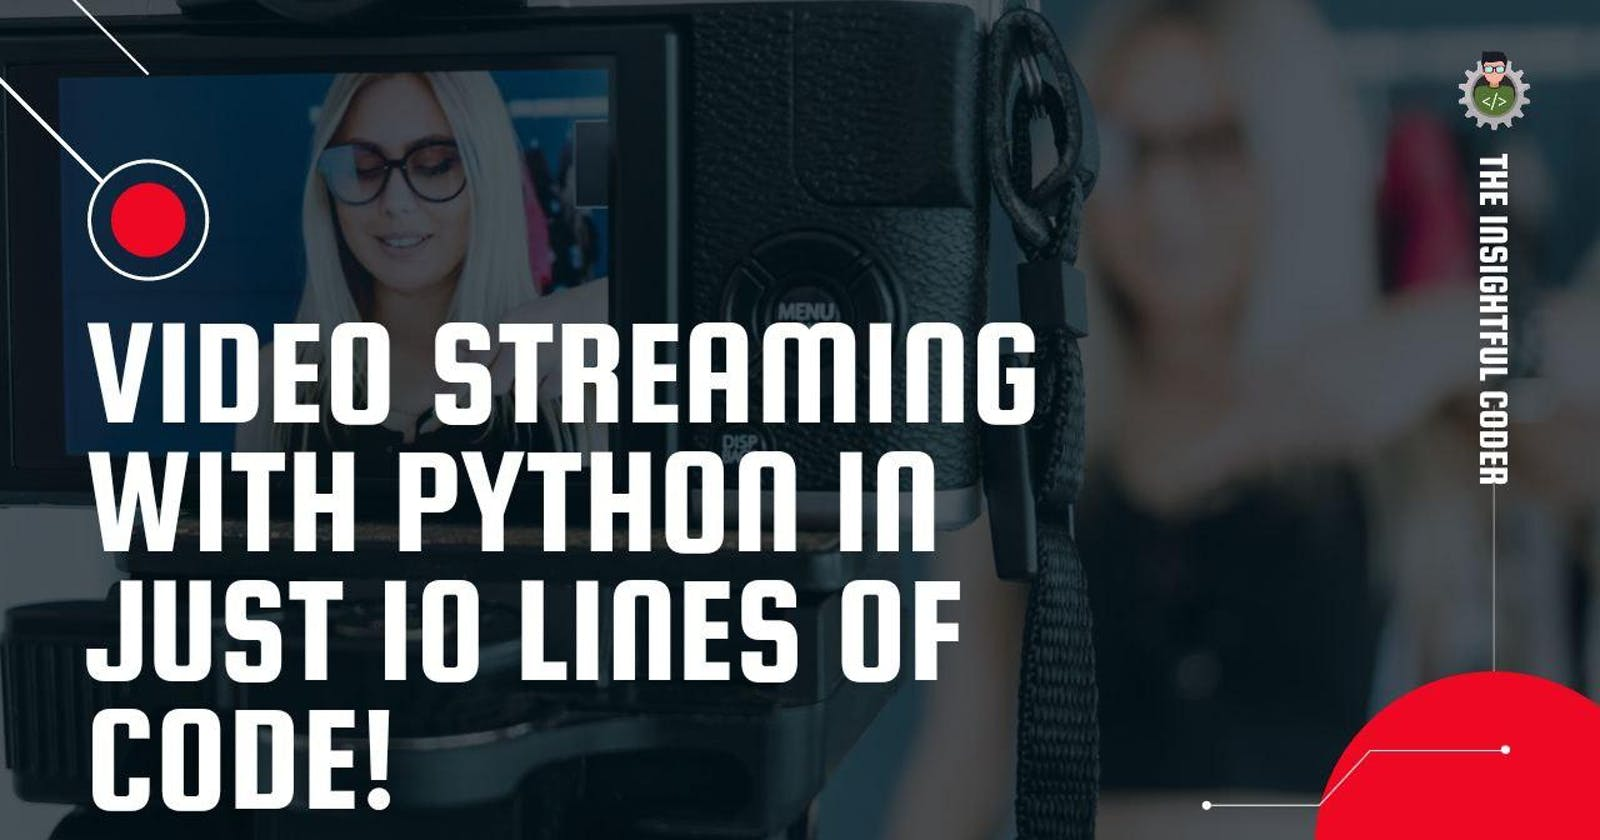 Video Streaming With Python in Just 10 Lines of Code!